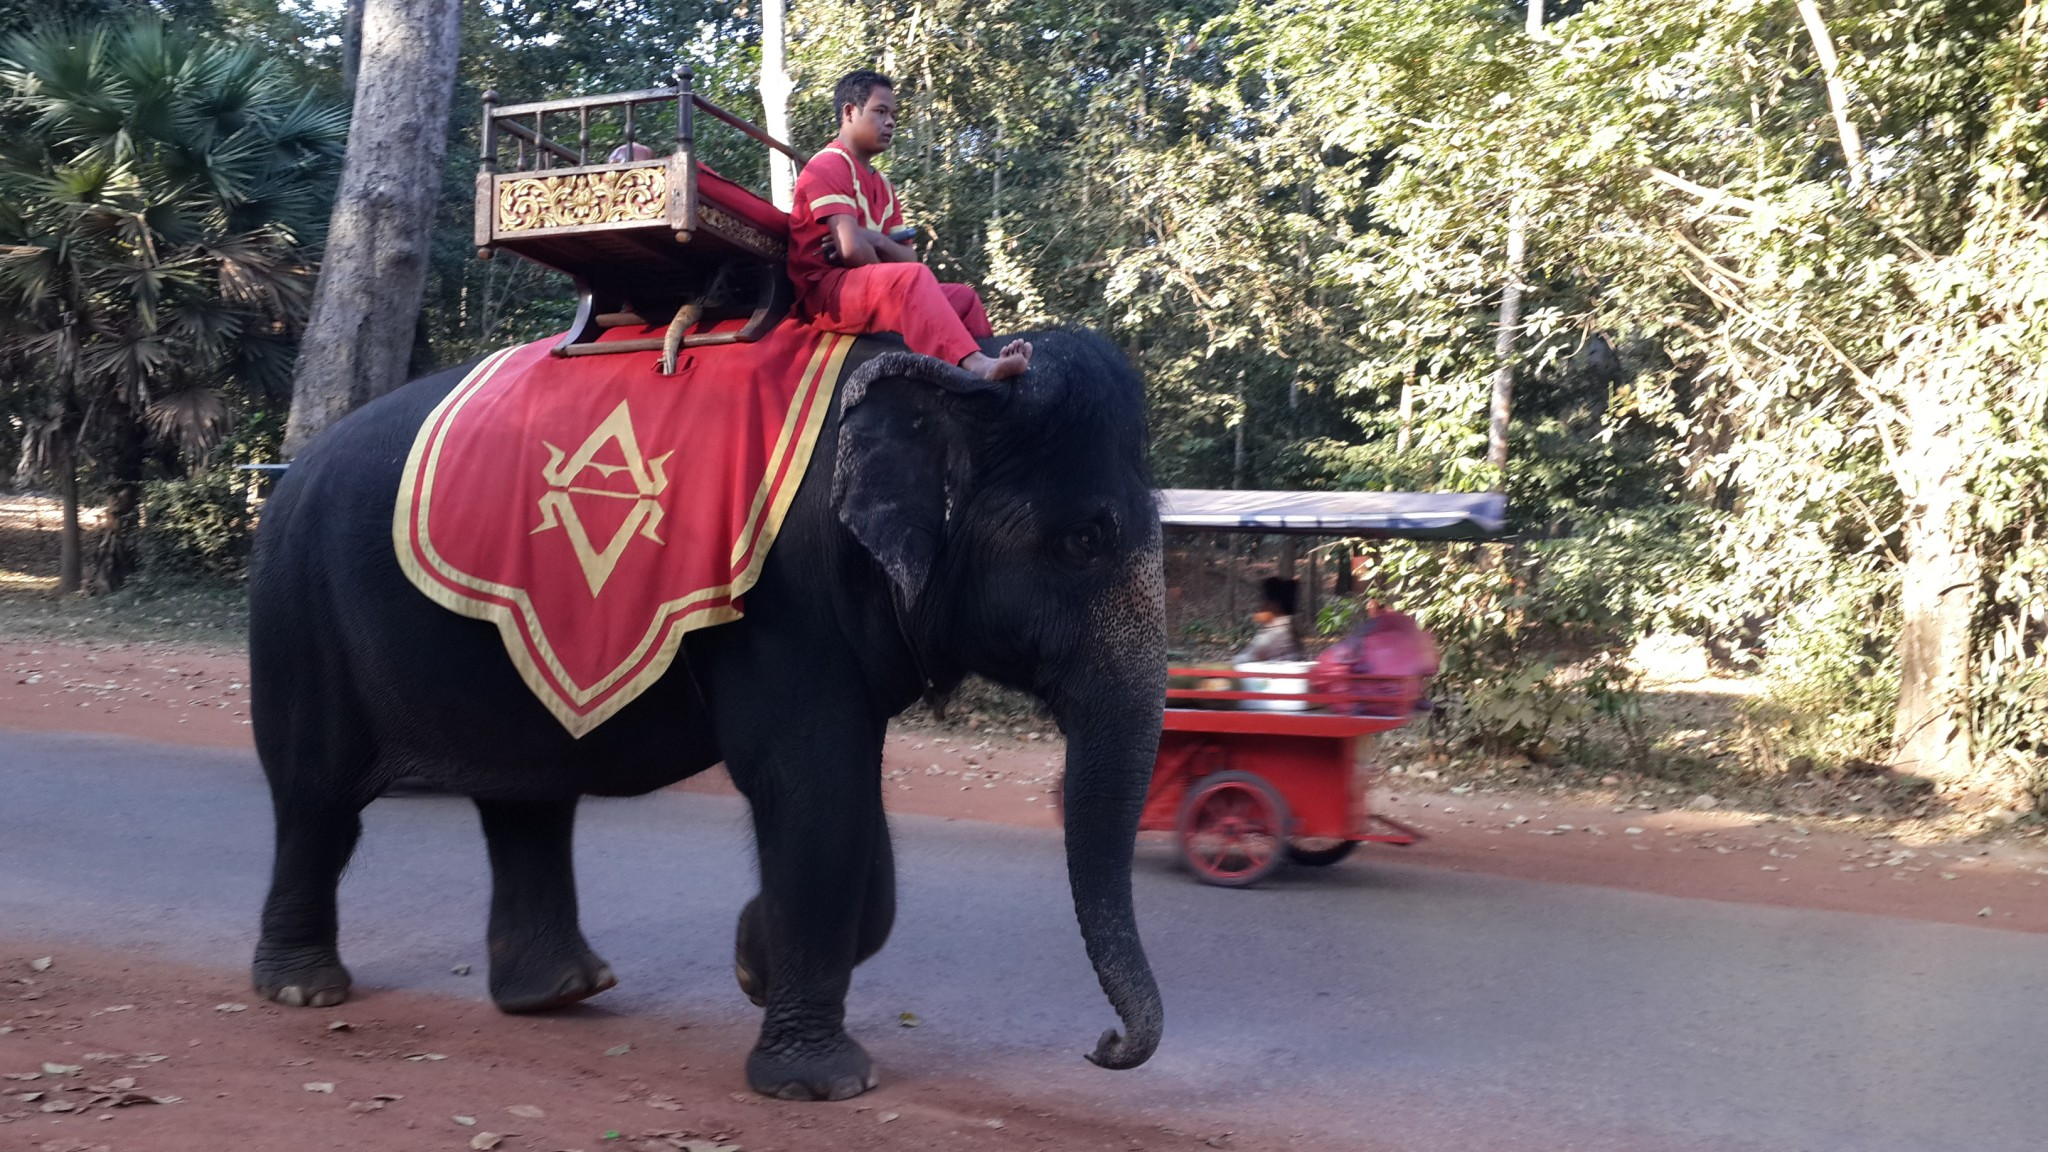 Elephant taxi at Angkor Wat.